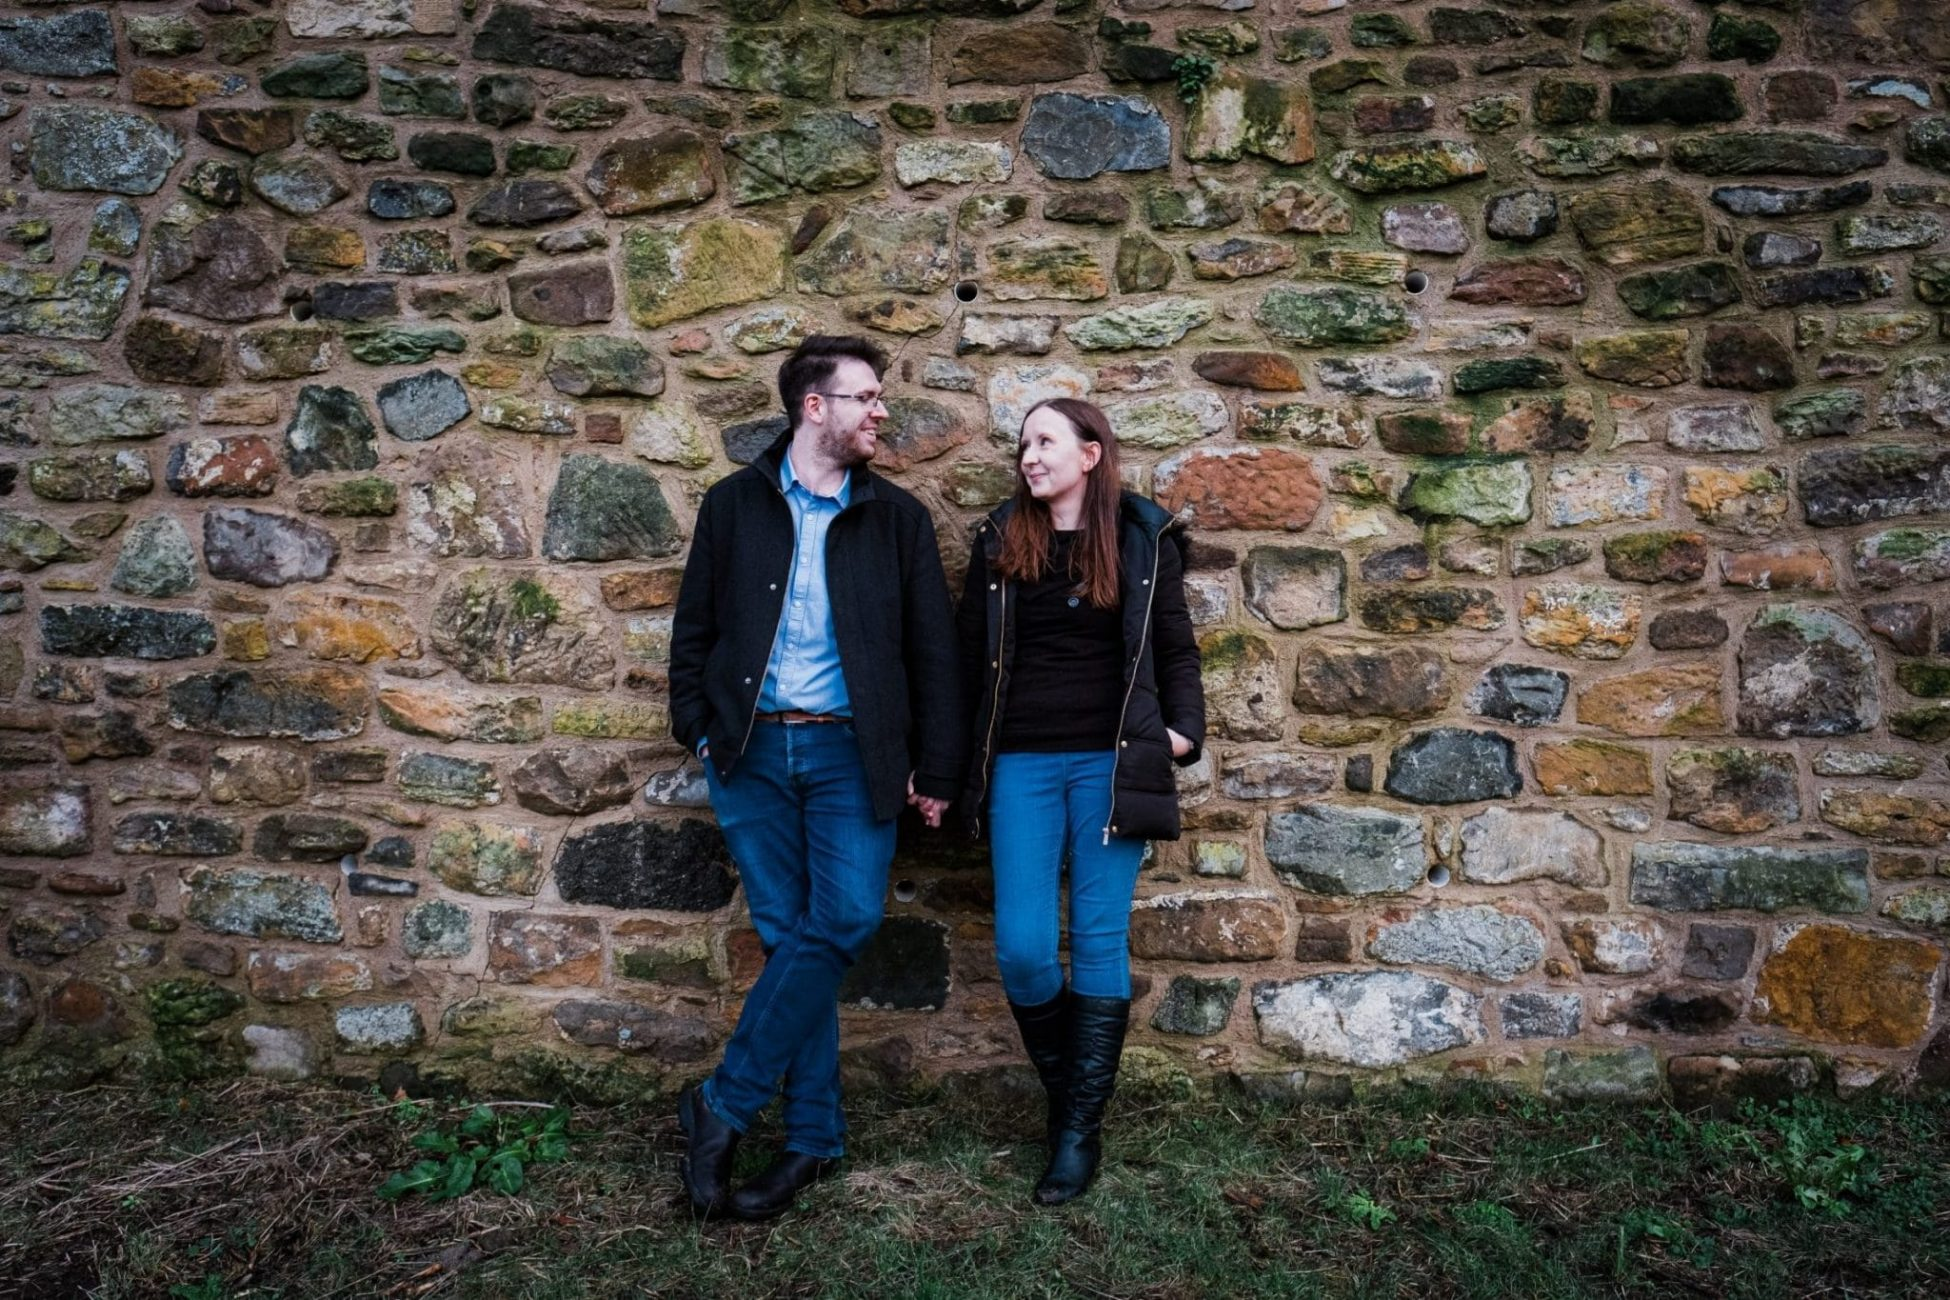 An engagement portrait of a couple against a wall